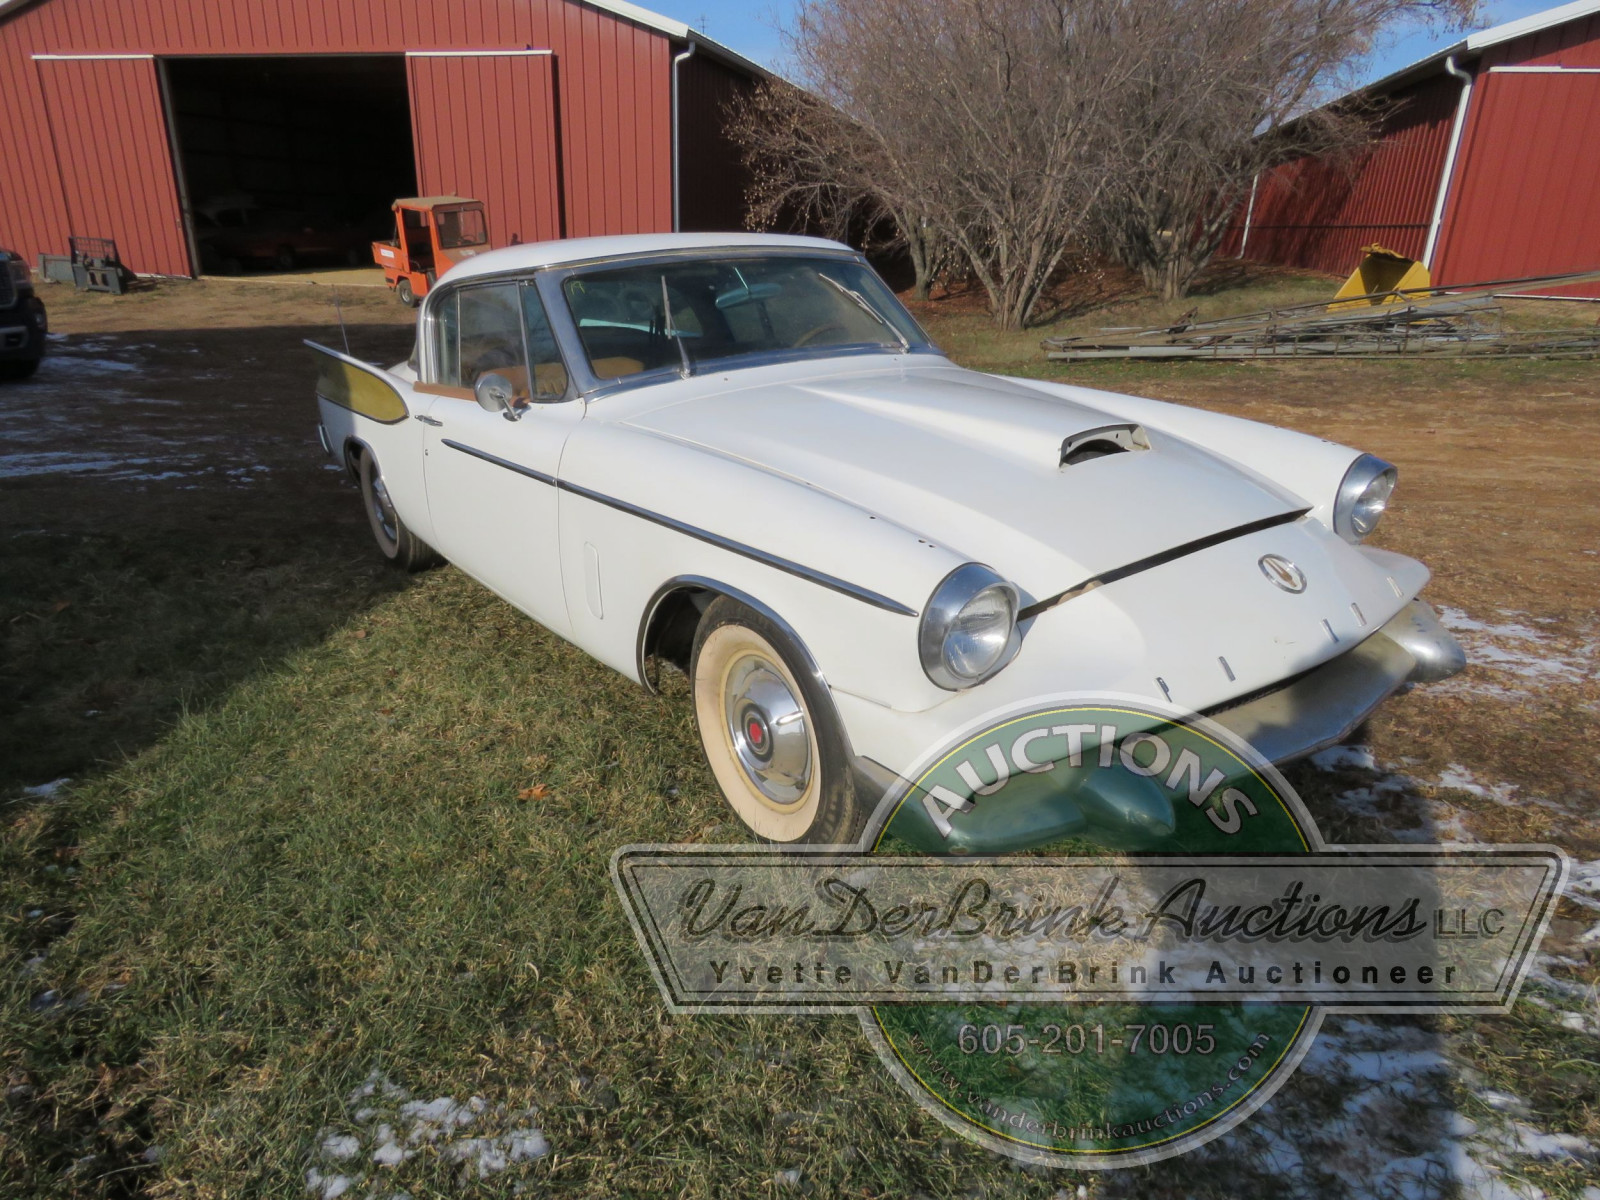 Rare 1958 Supercharged Packard Hawk - Image 1